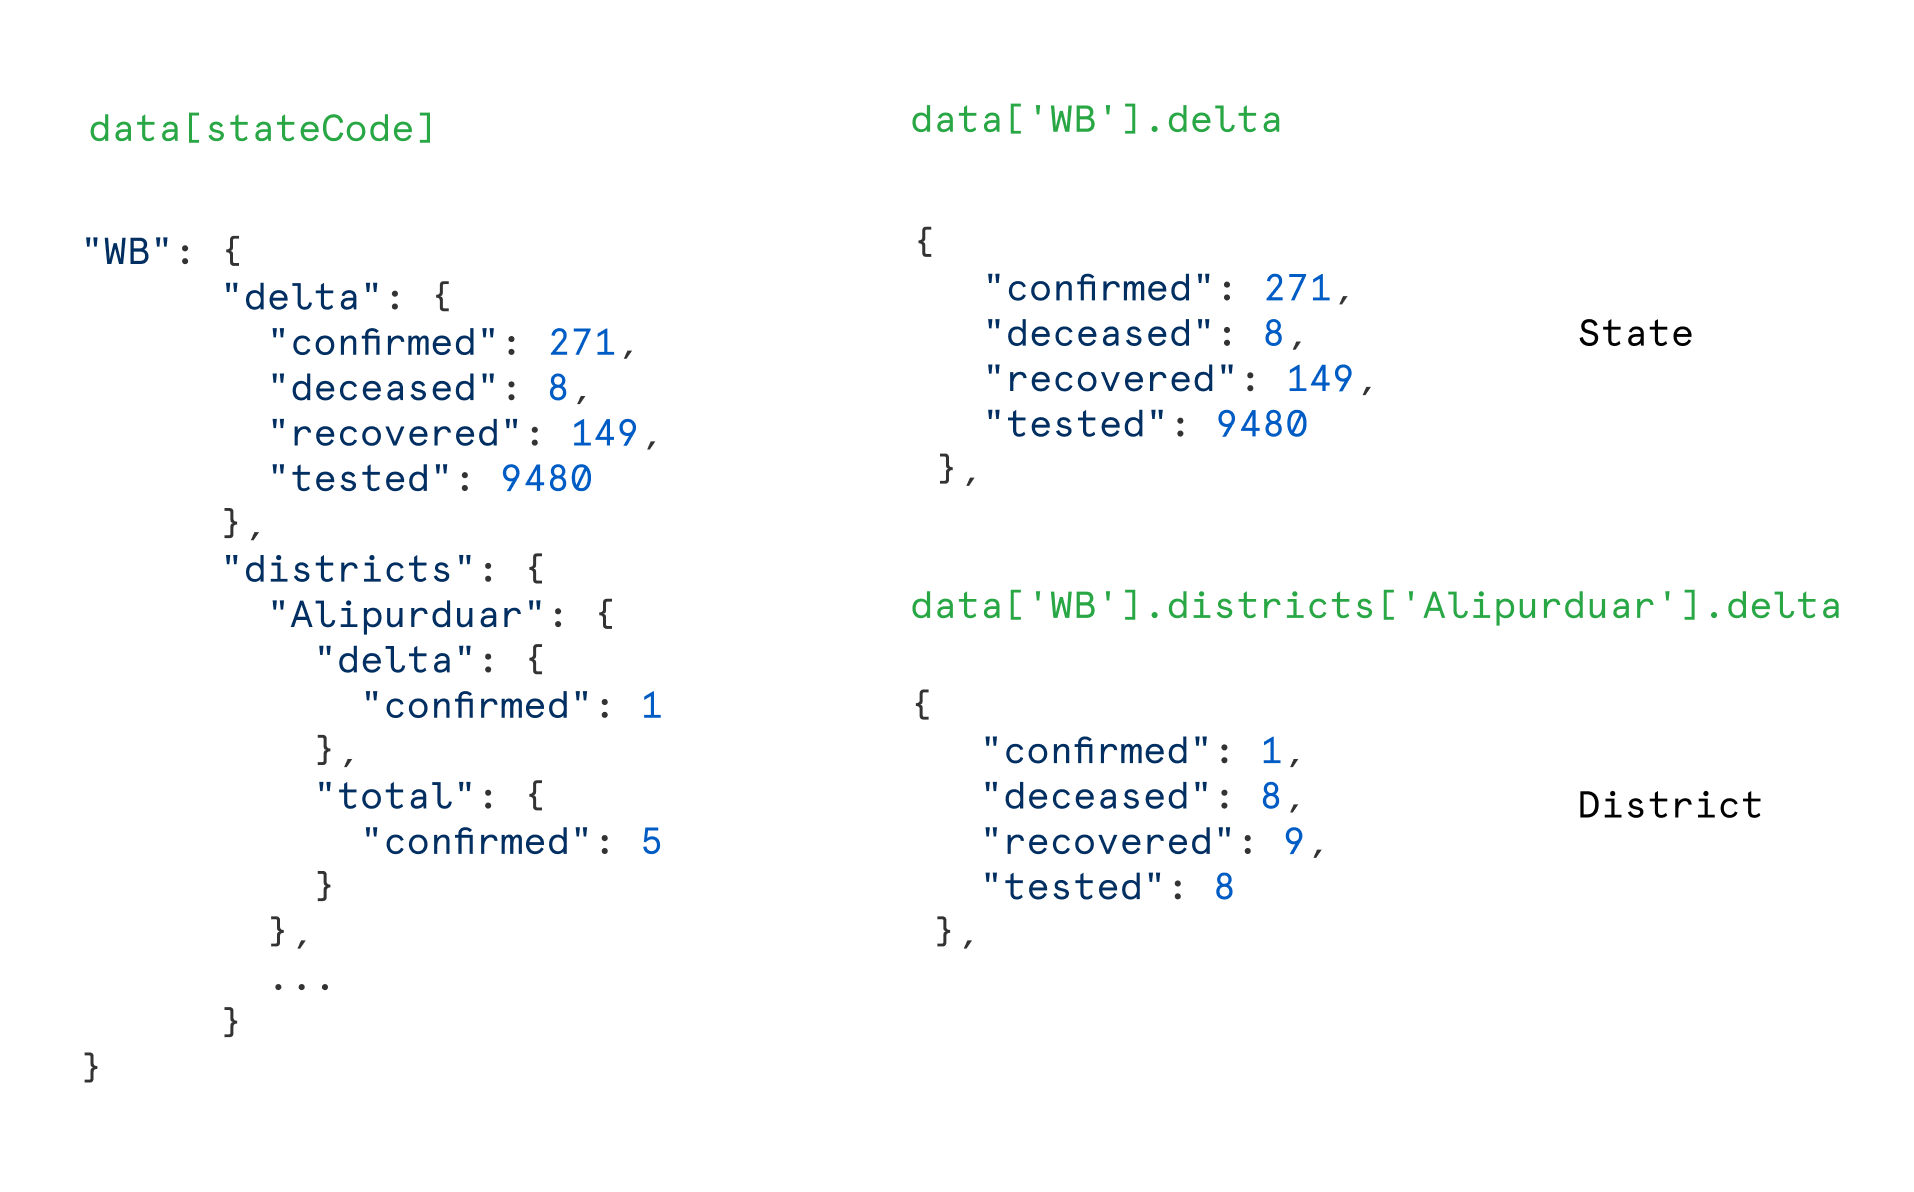 Notice how by using similar data structures for both states and districts, we don't have to handle district rows any differently. We can use a single row component to handle both cases easily